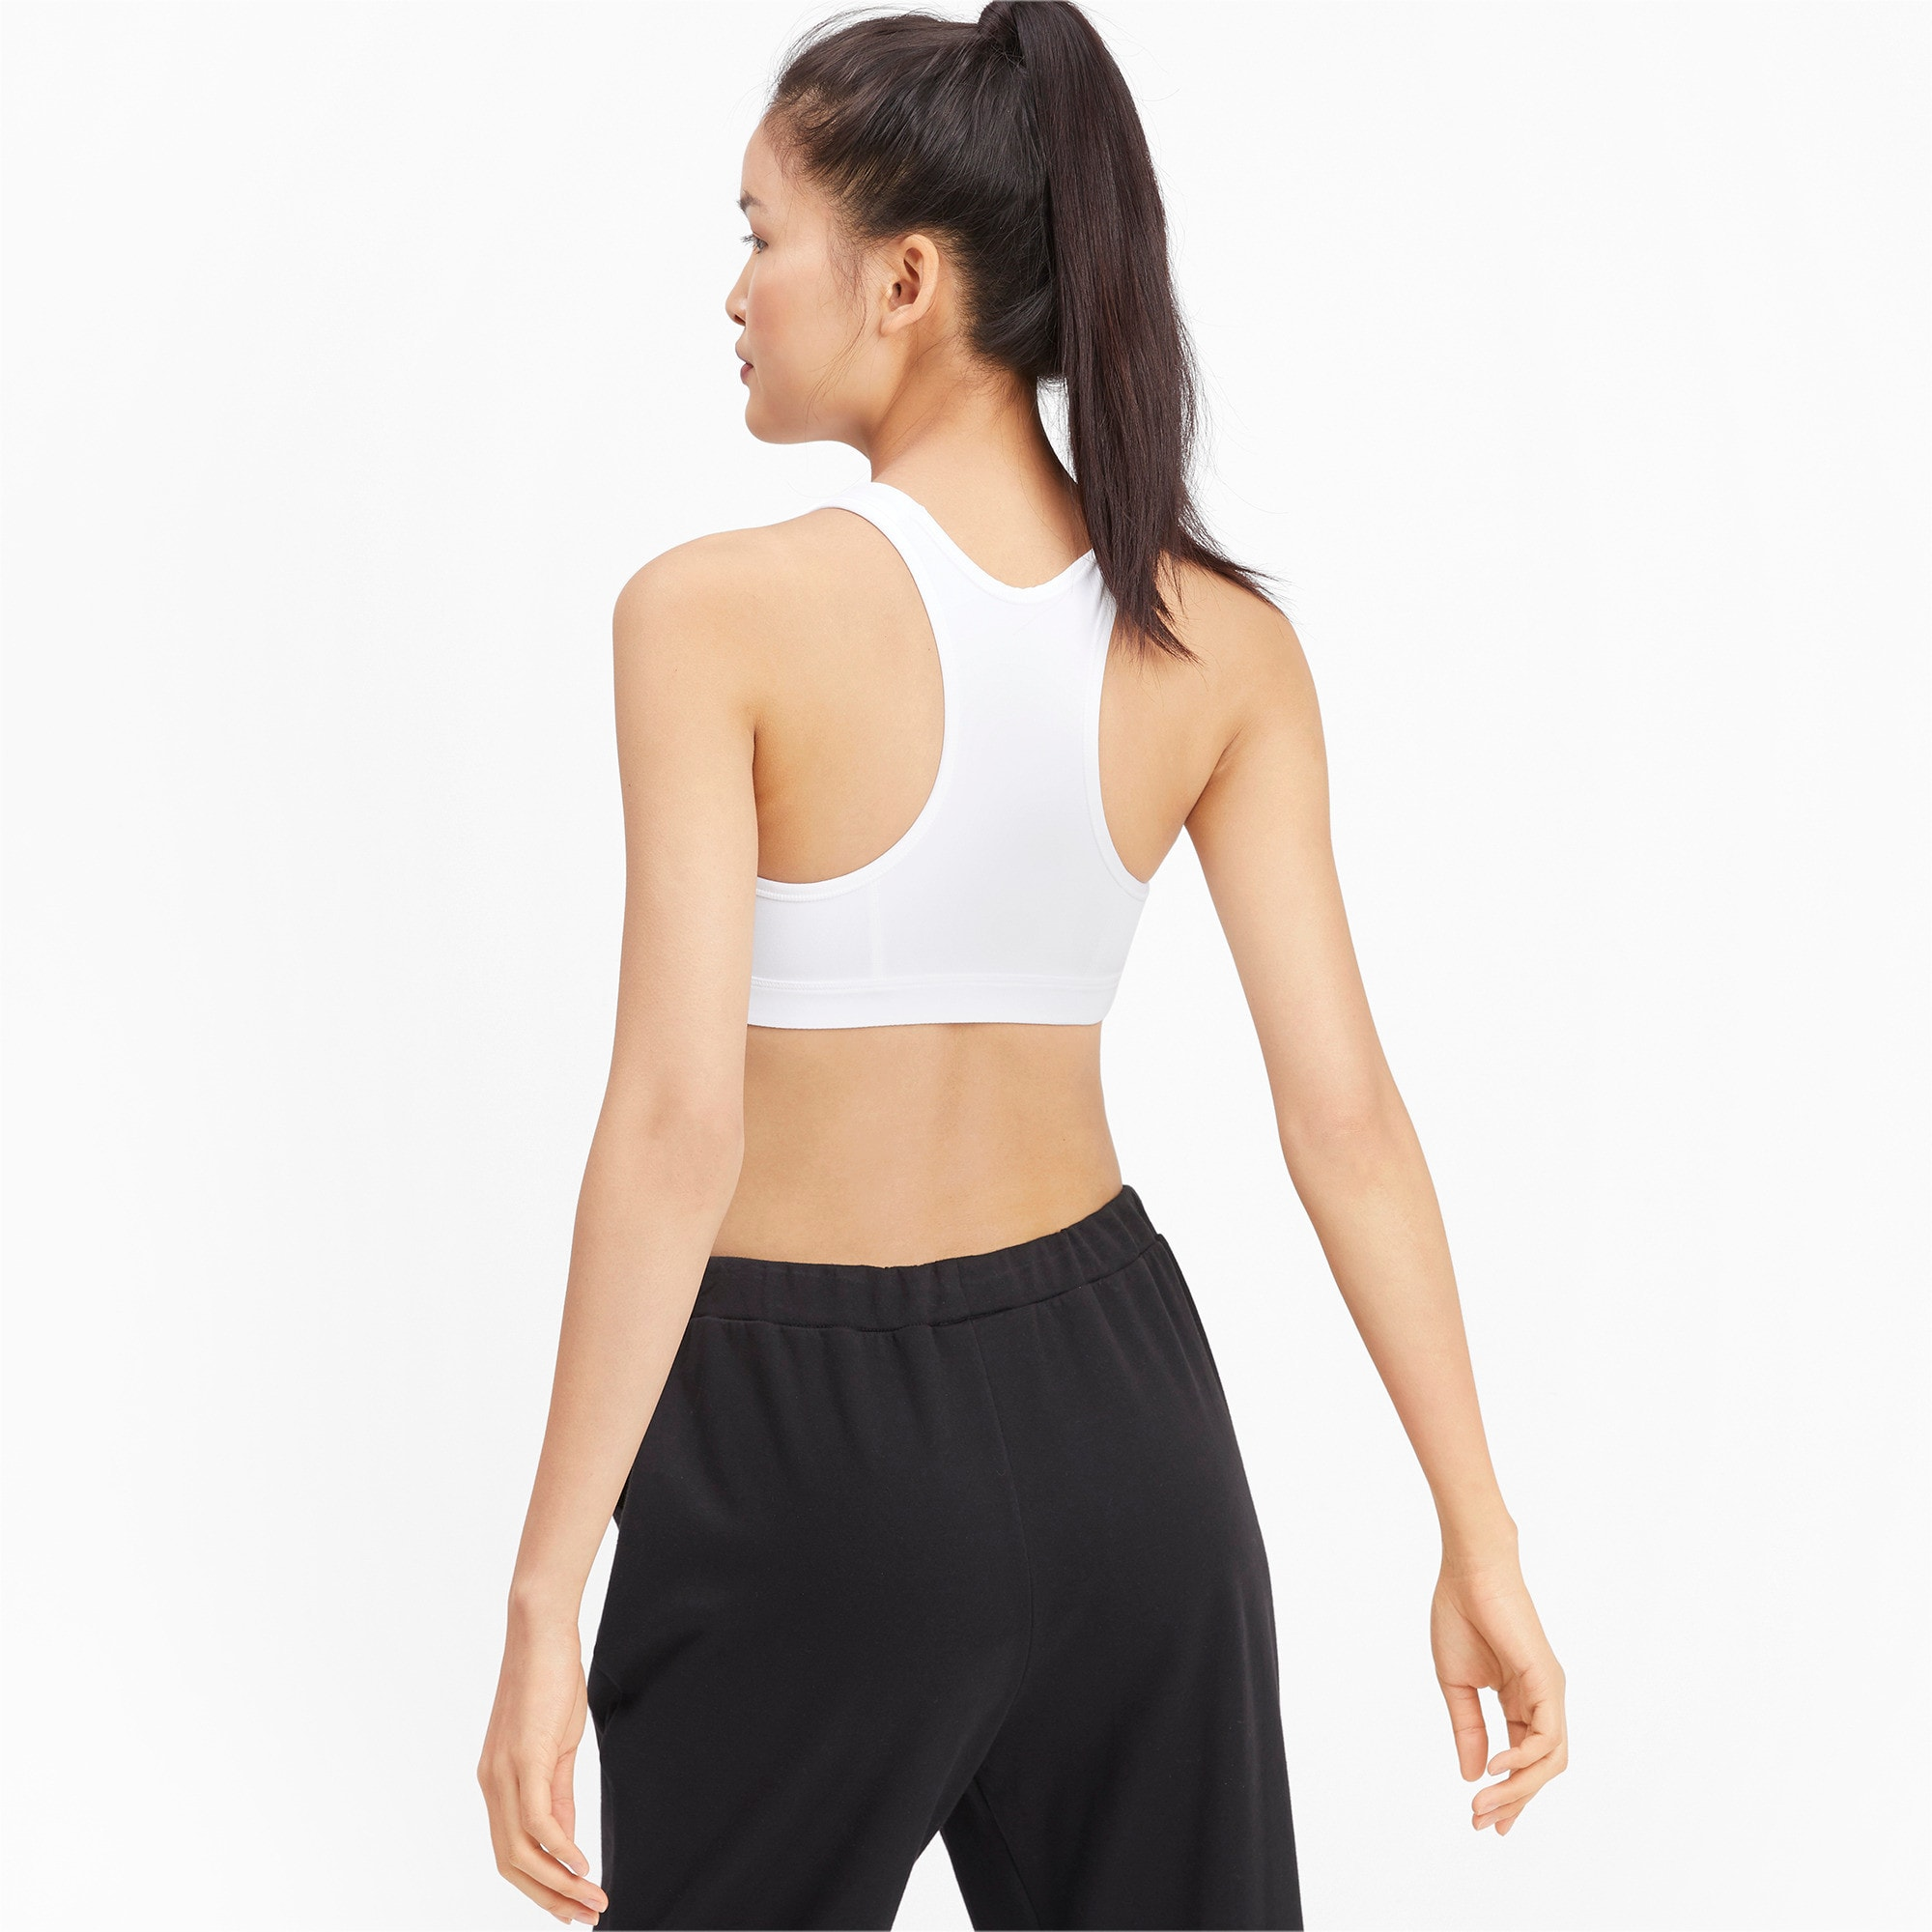 Thumbnail 2 of 4Keeps Mid Impact Women's Bra Top, Puma White-Puma Black, medium